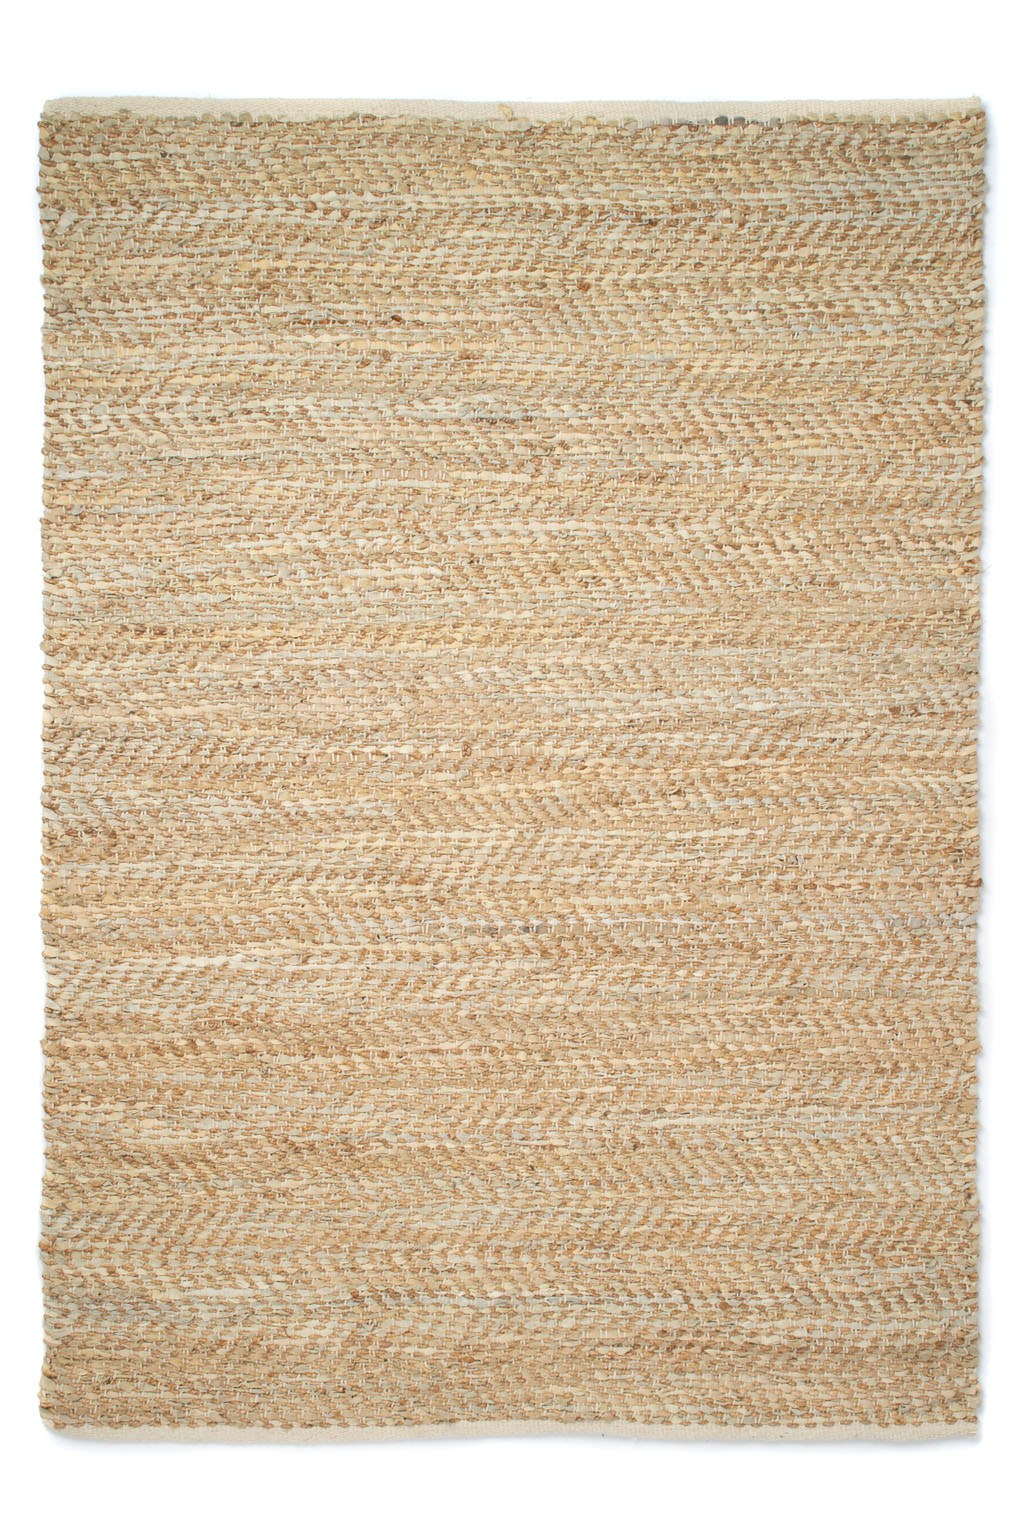 Brand new woven leather rug | Furniture Shop ES91